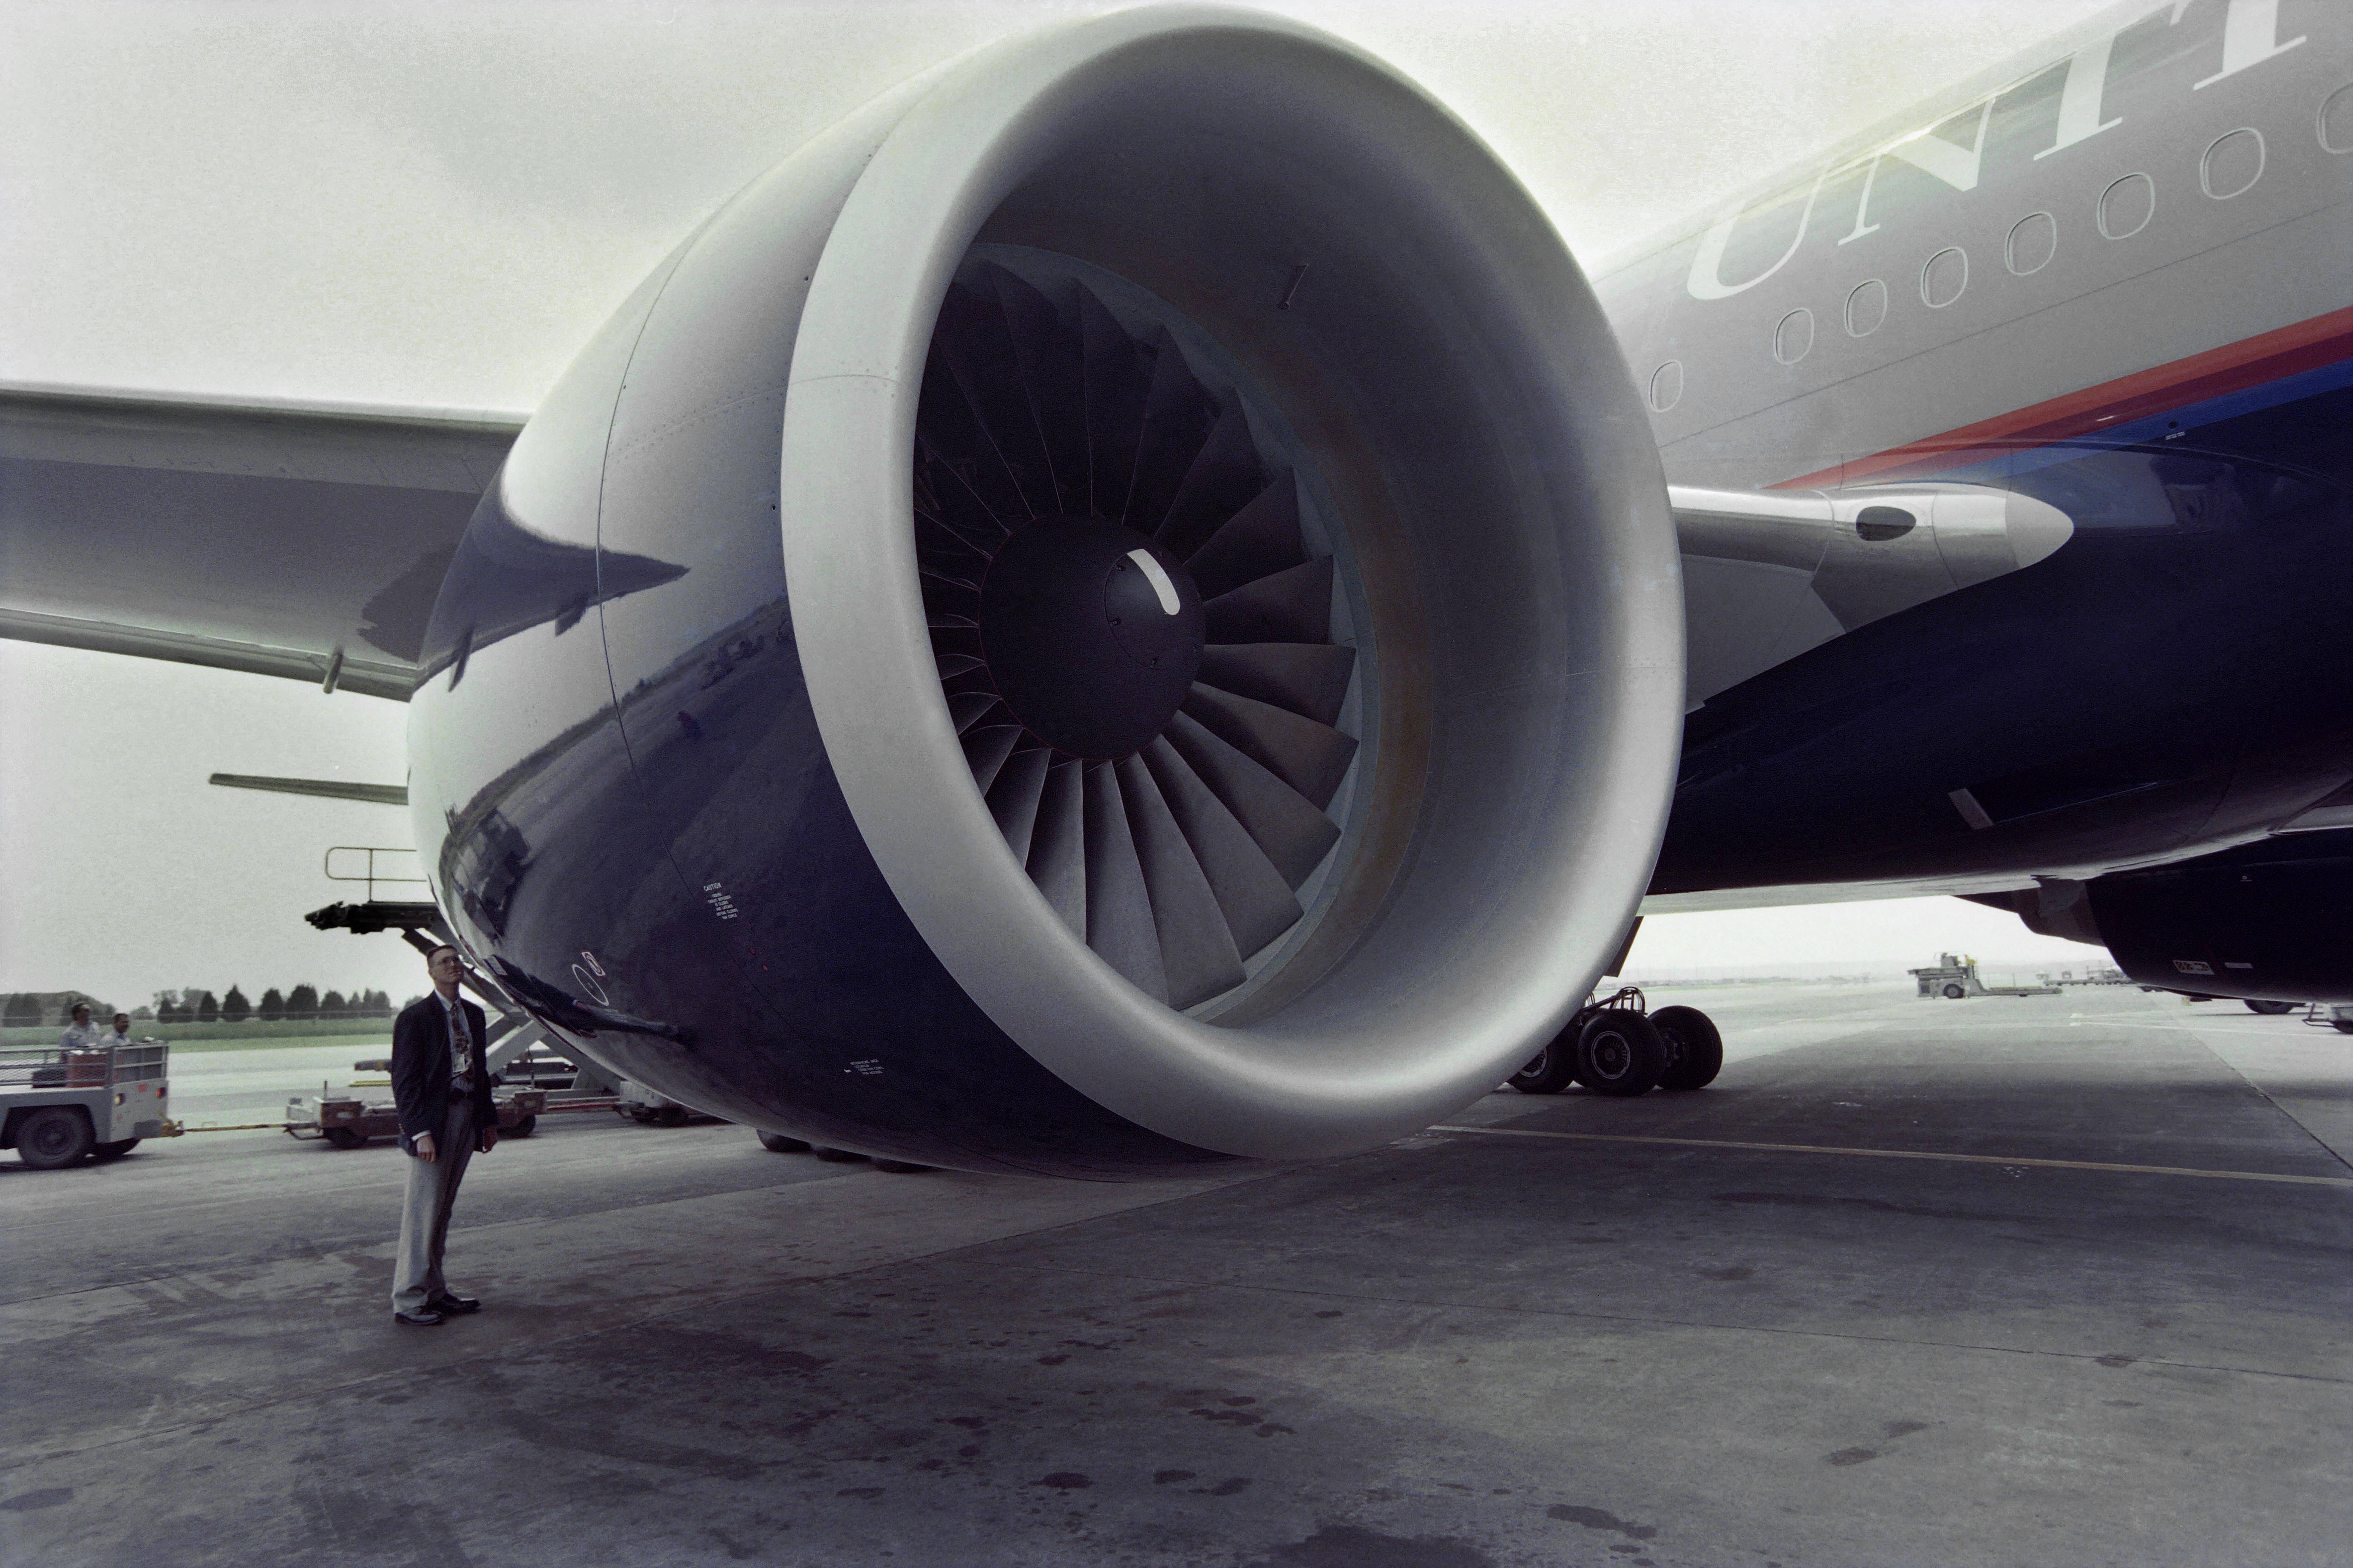 Boeing 777 with engine trouble makes emergency landing - Khaleej Times